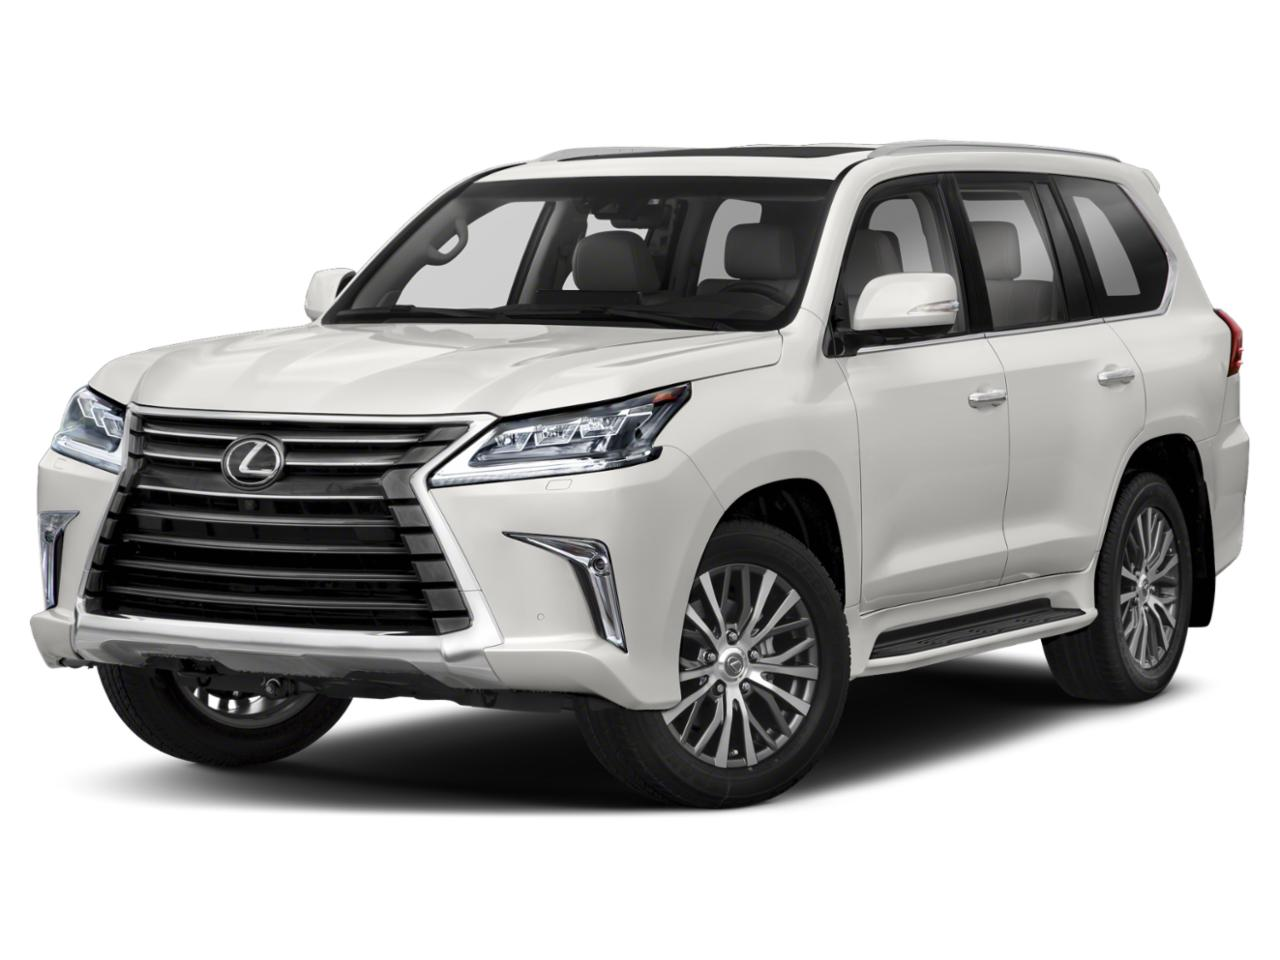 2021 Lexus LX 570 Vehicle Photo in Dallas, TX 75235